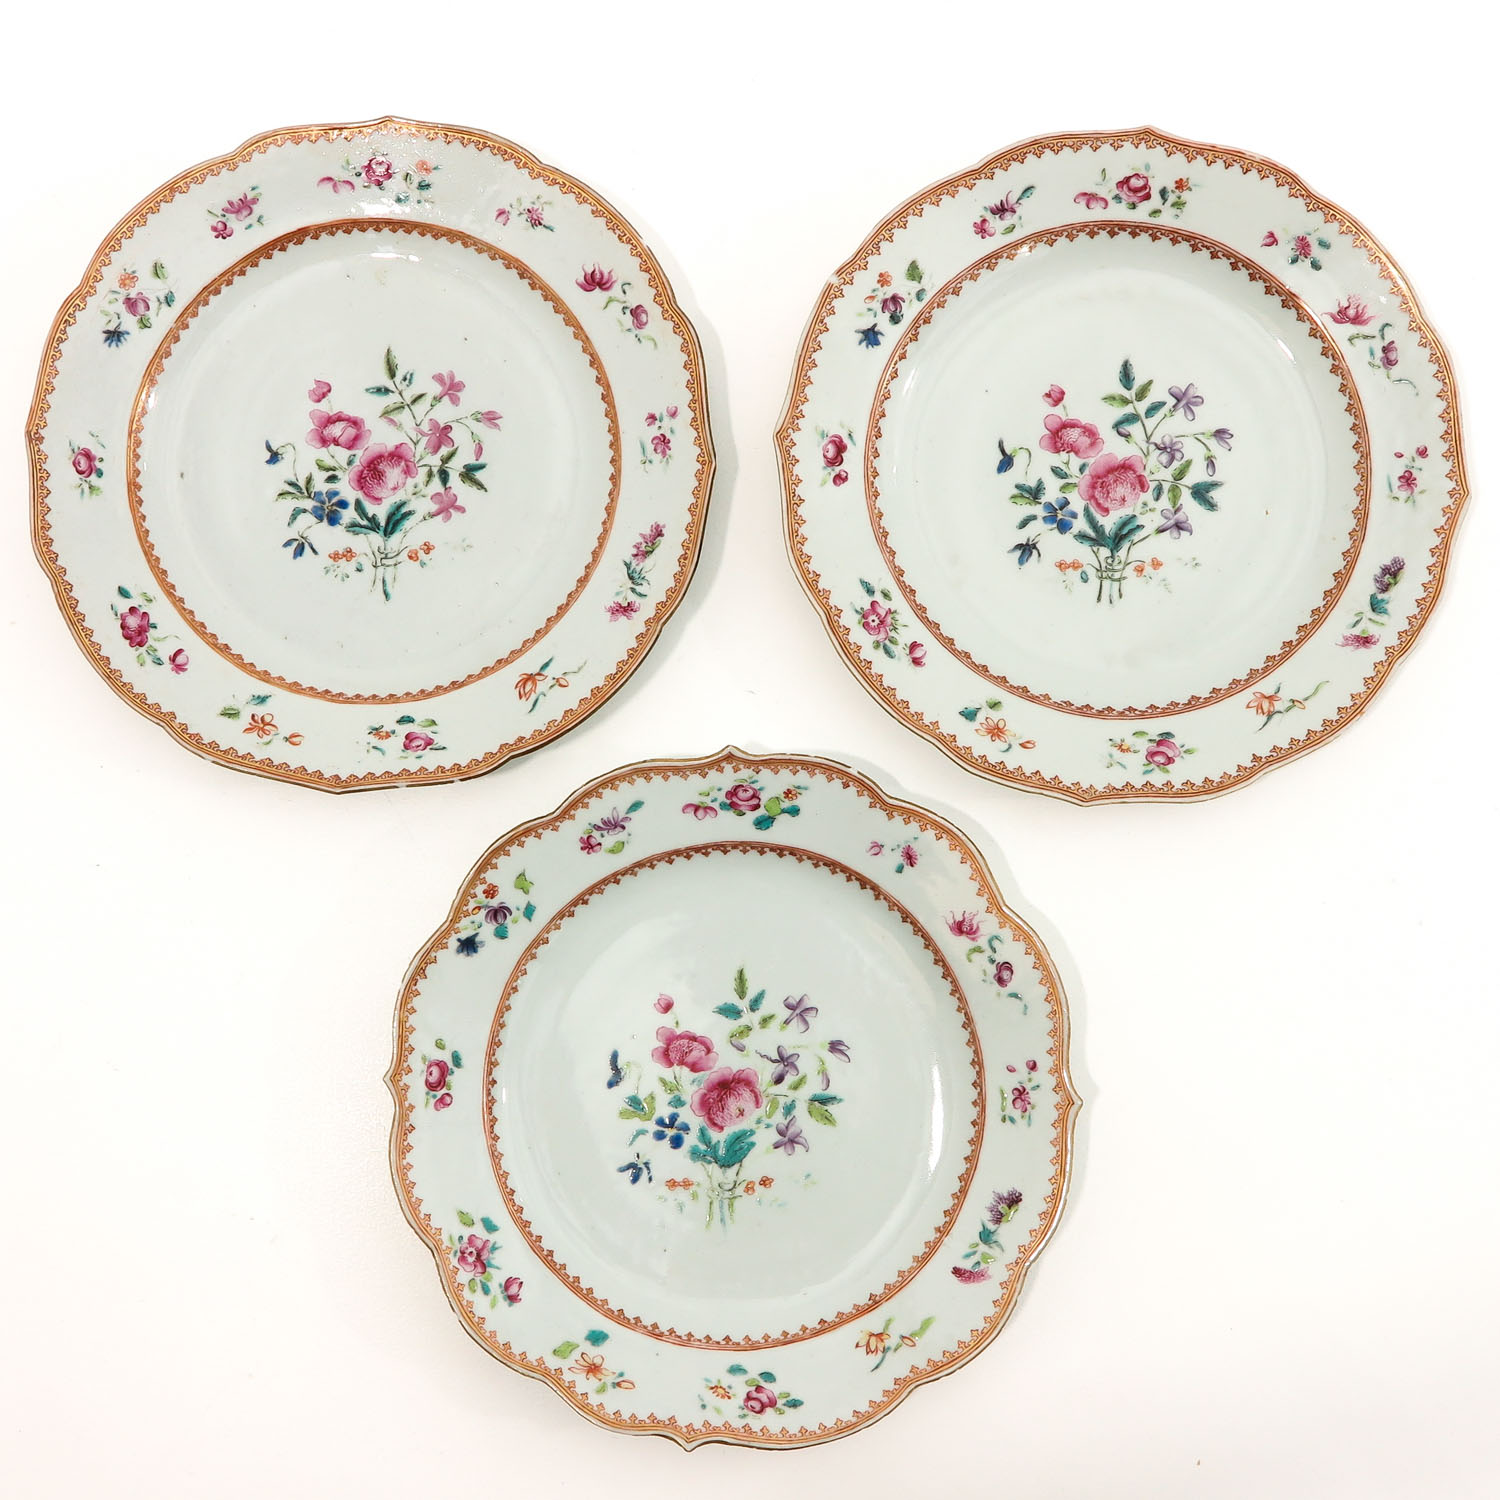 A Series of 8 Famille Rose Plates - Image 3 of 10